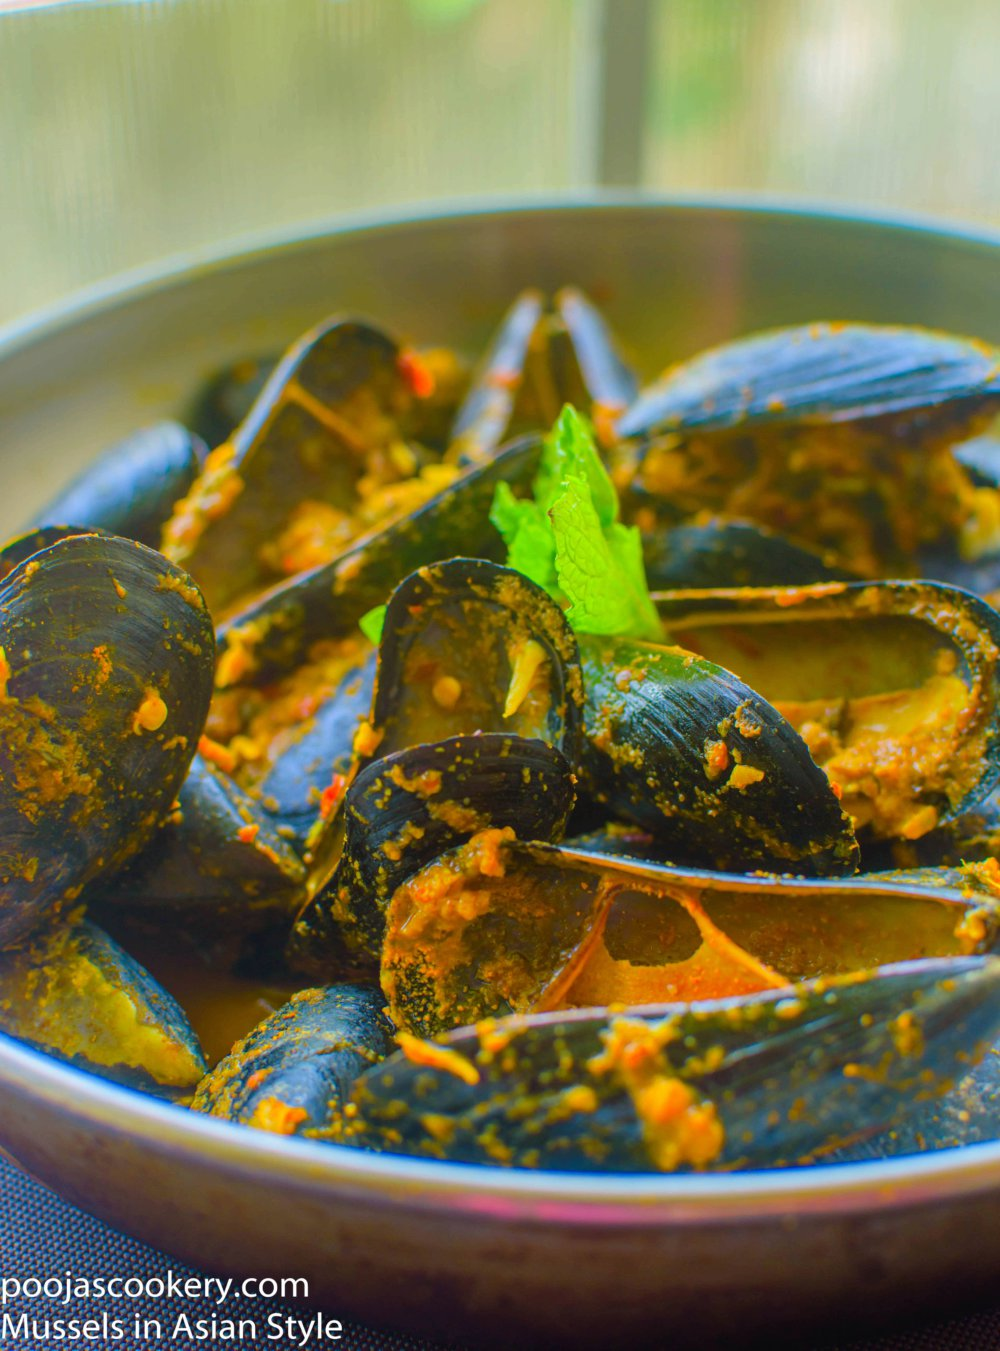 Mussels in Asian Style